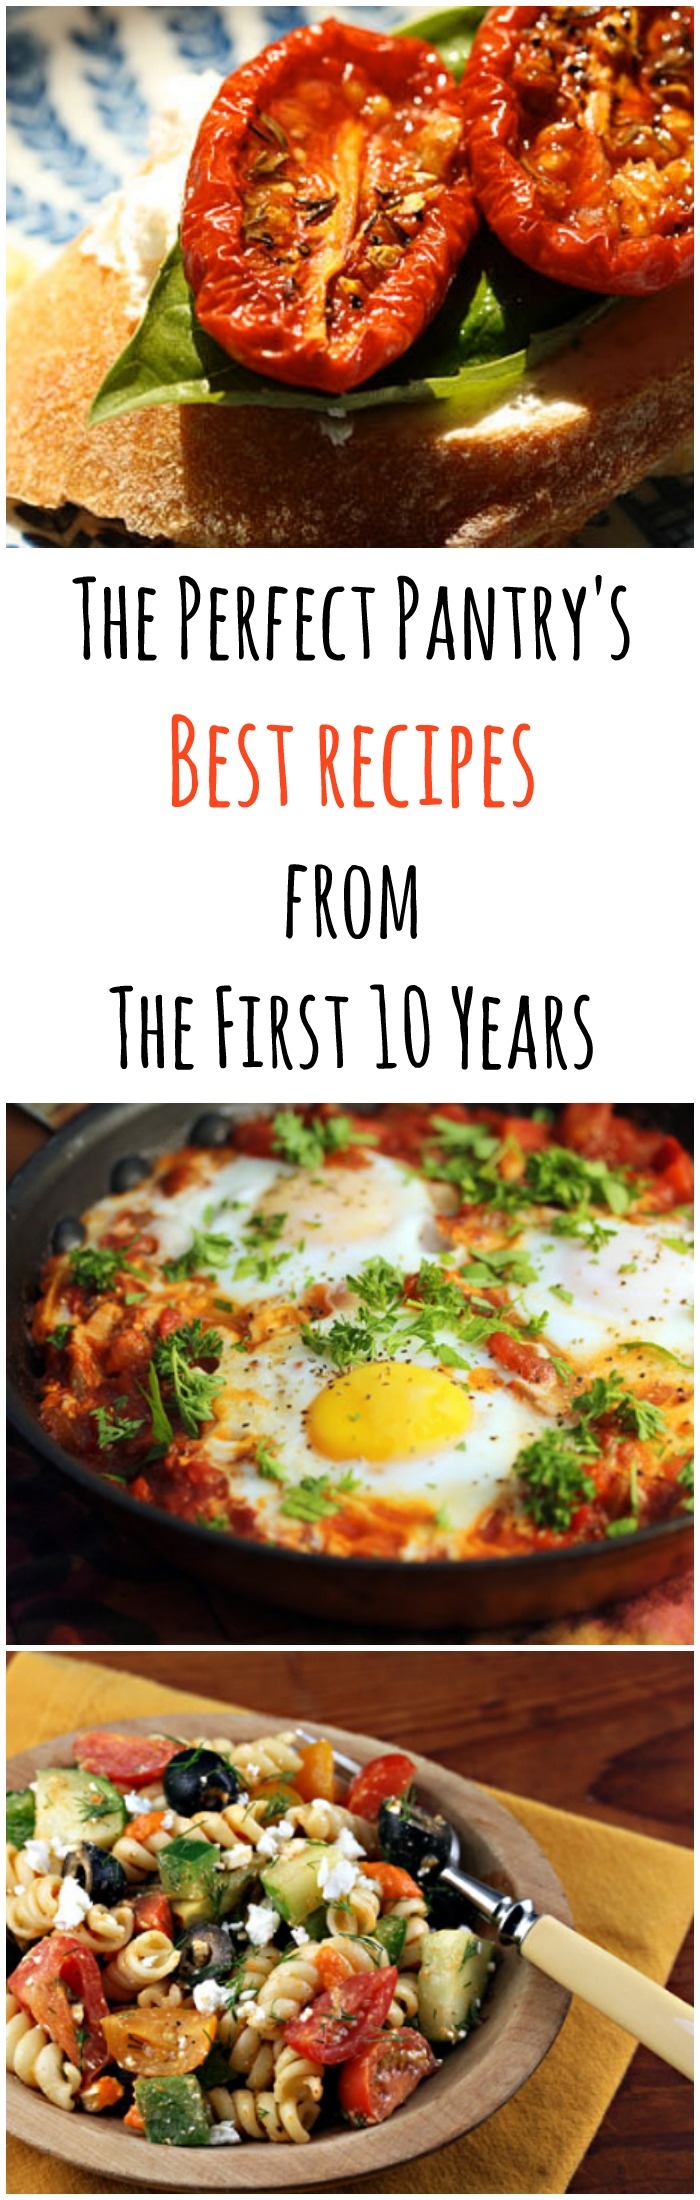 The best recipes from The Perfect Pantry's first 10 years.